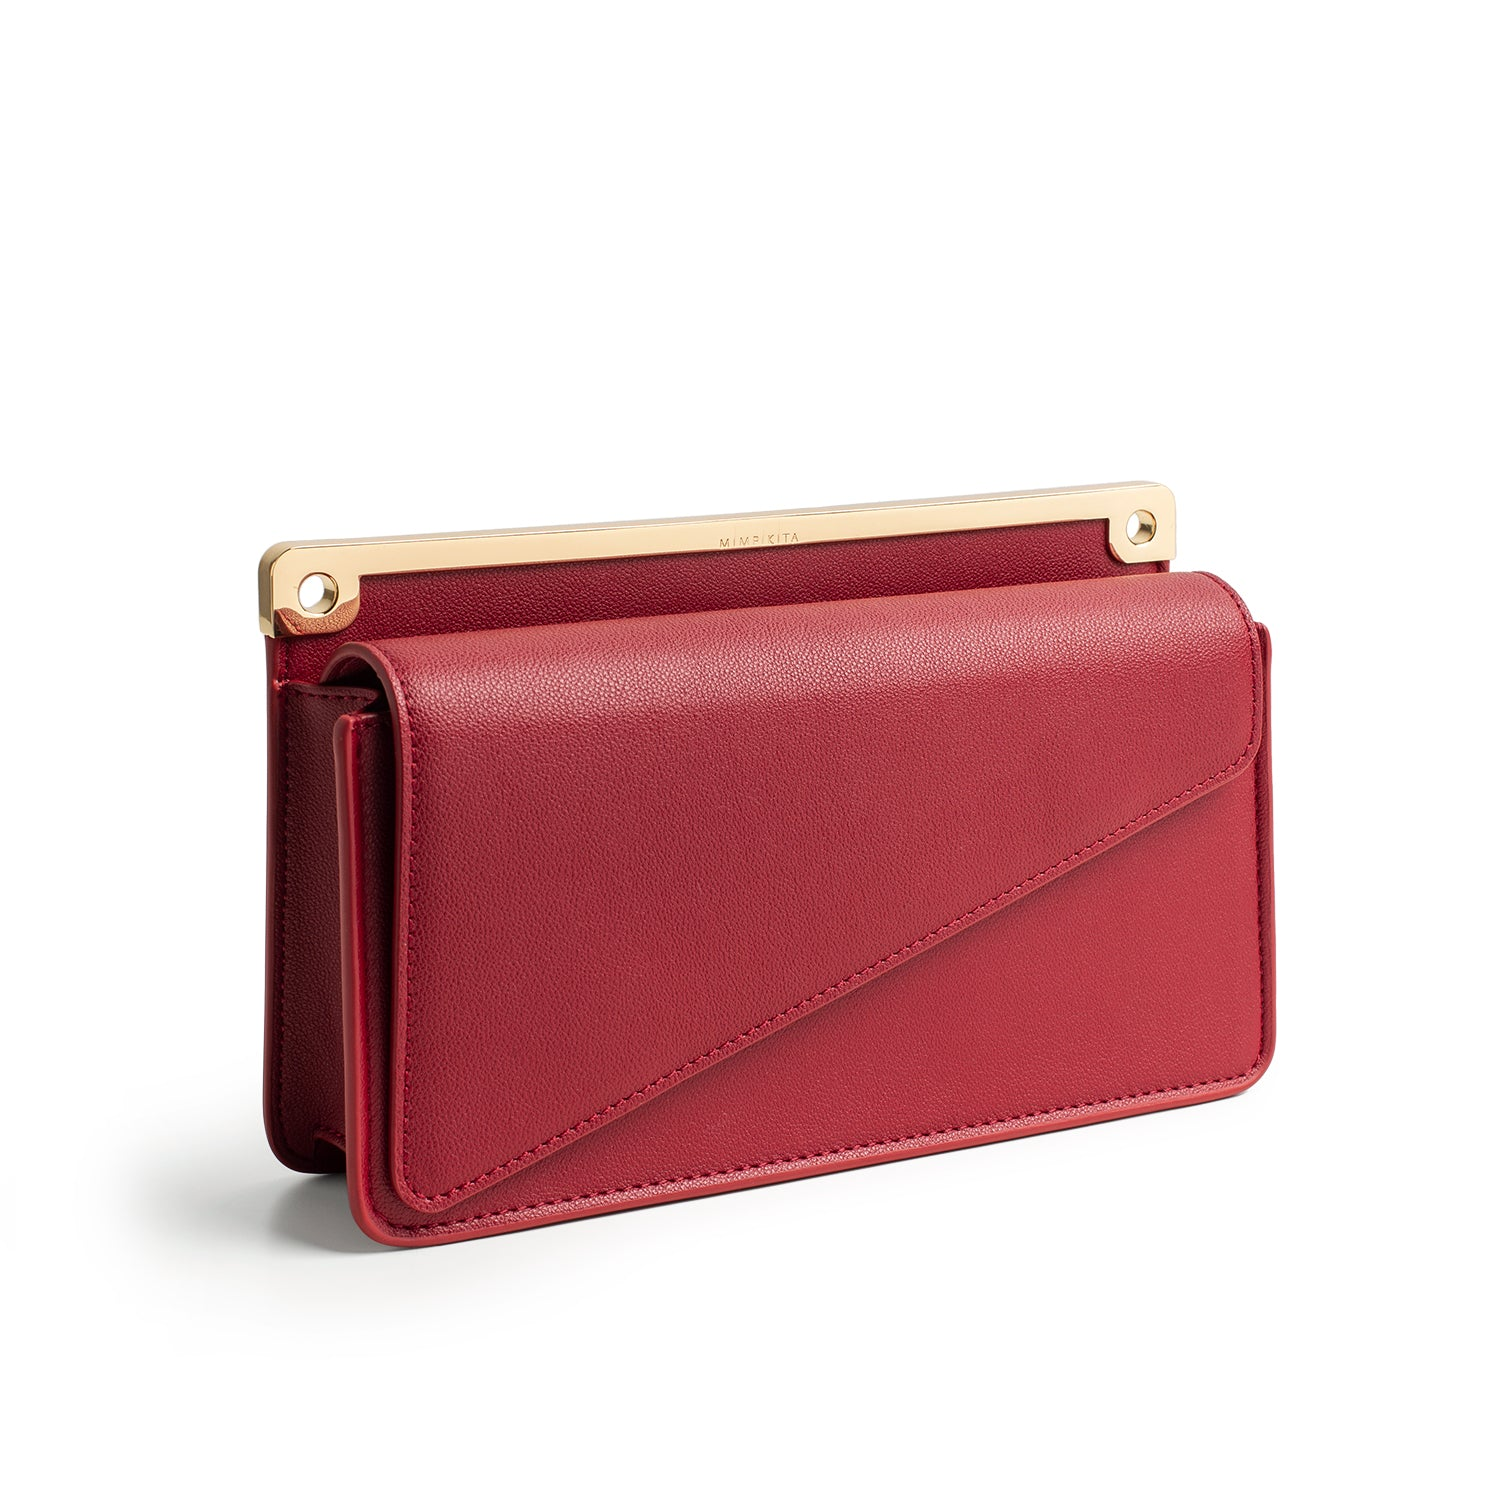 KITA CLUTCH - WINE RED